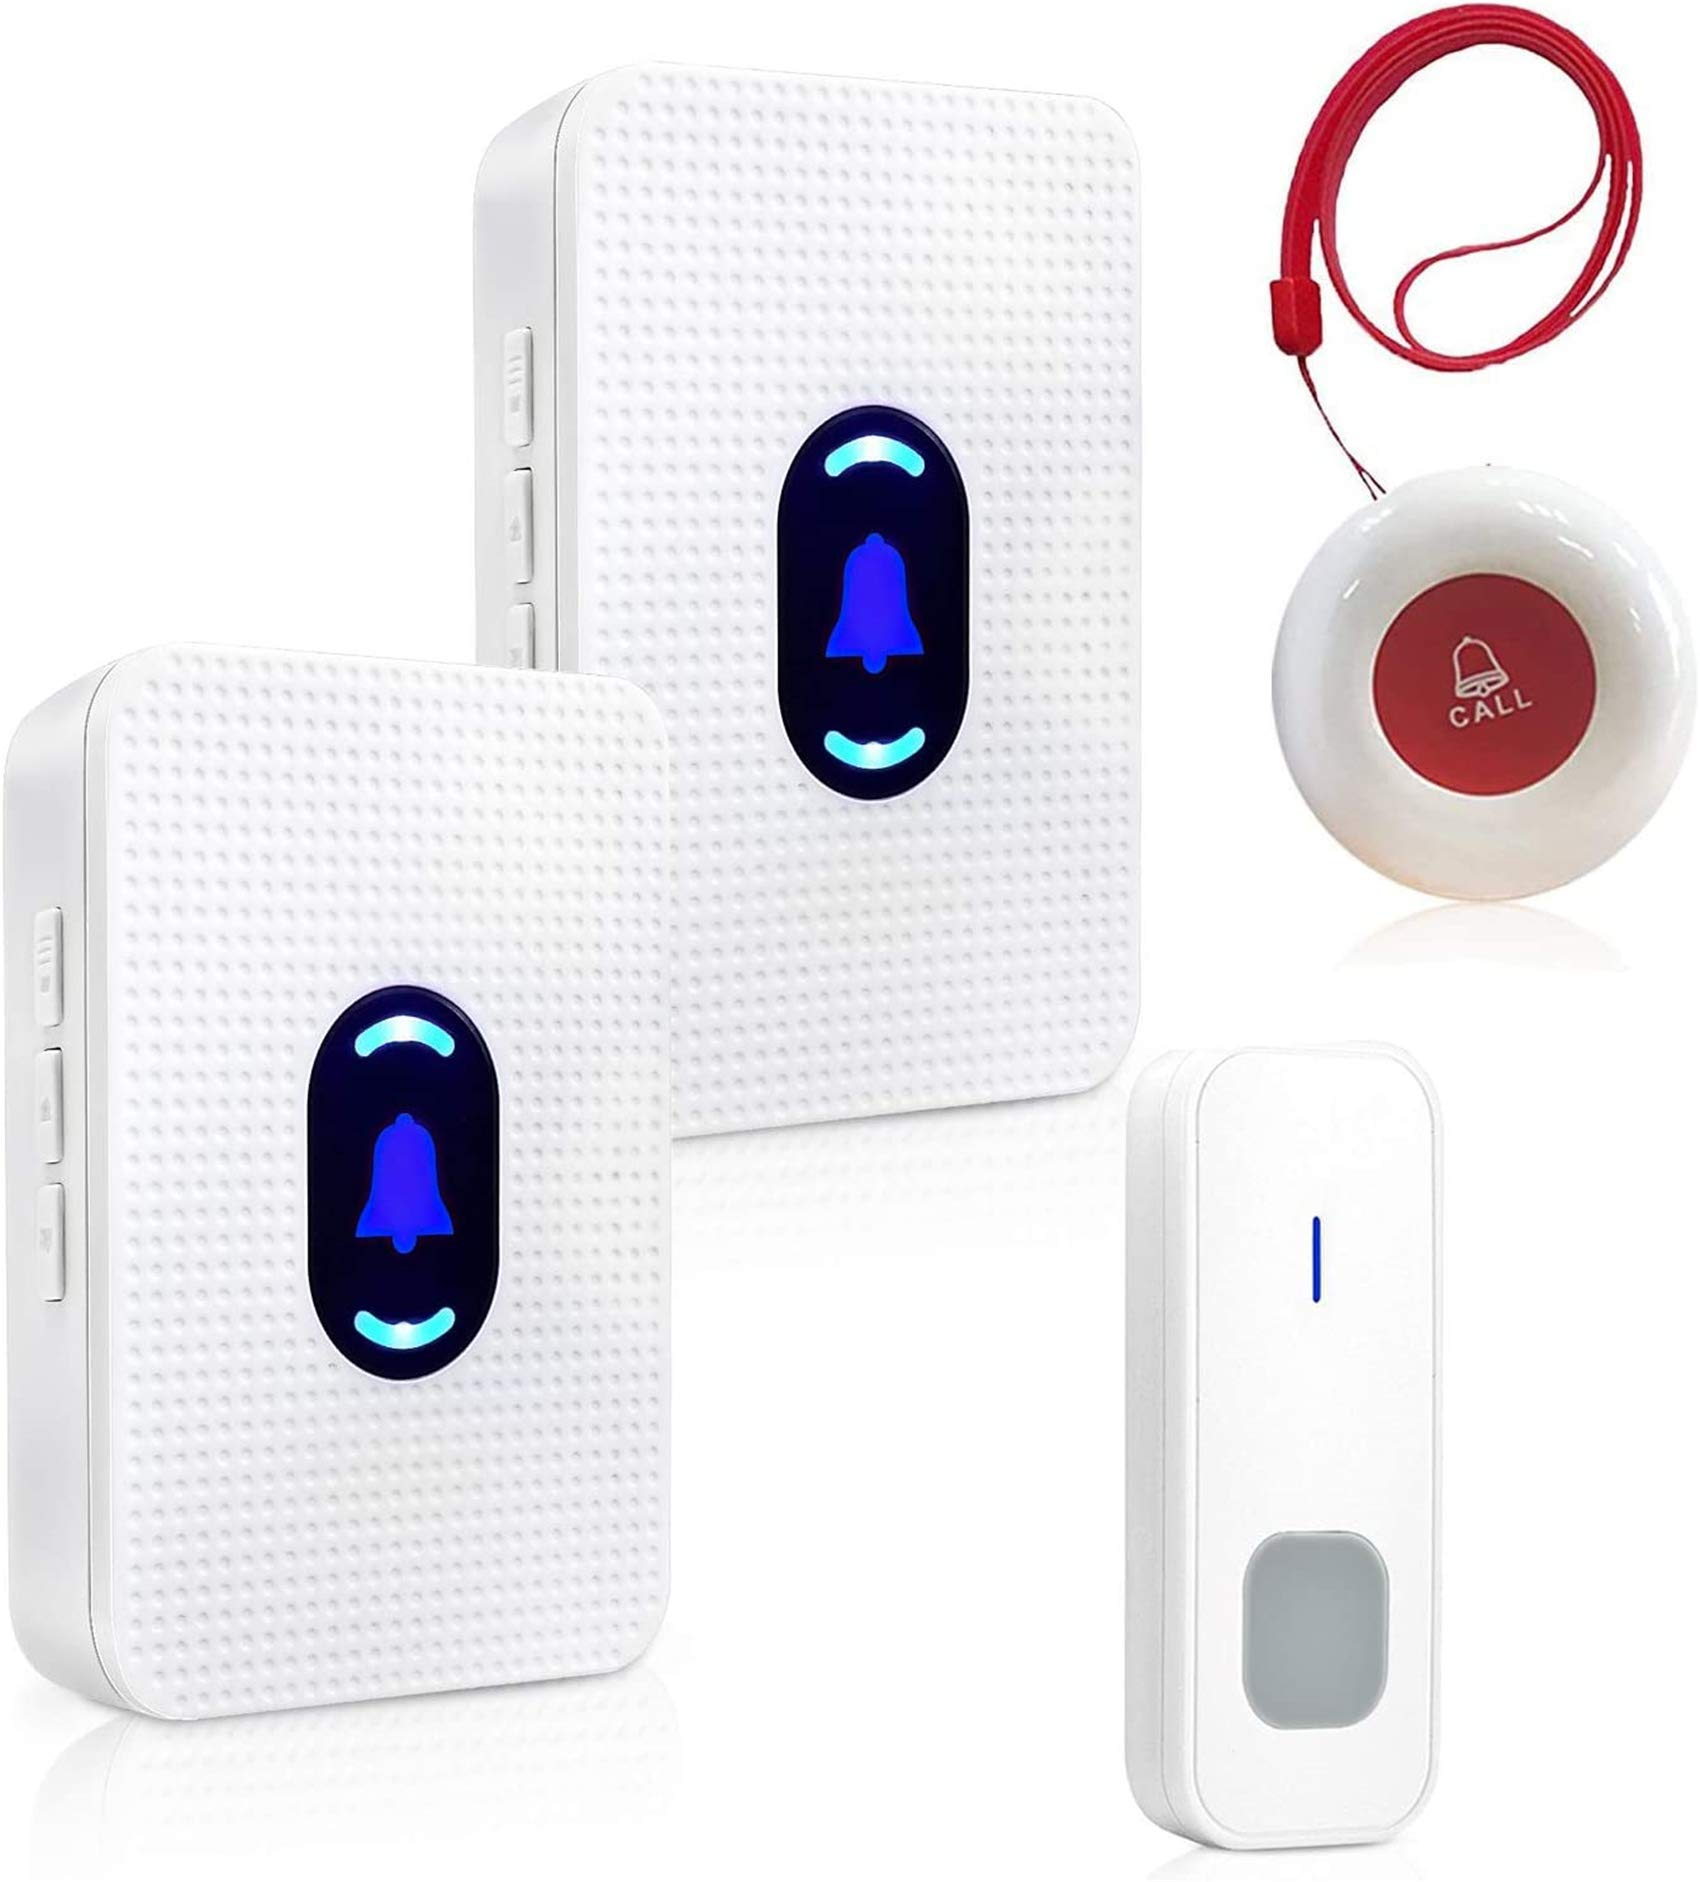 Daytech Caregiver Pager Elderly Emergency Call Button Help Pacnic Button Calling System for Home with 2 Receivers & 2 Waterproof Transmitters & 1 Doorbell